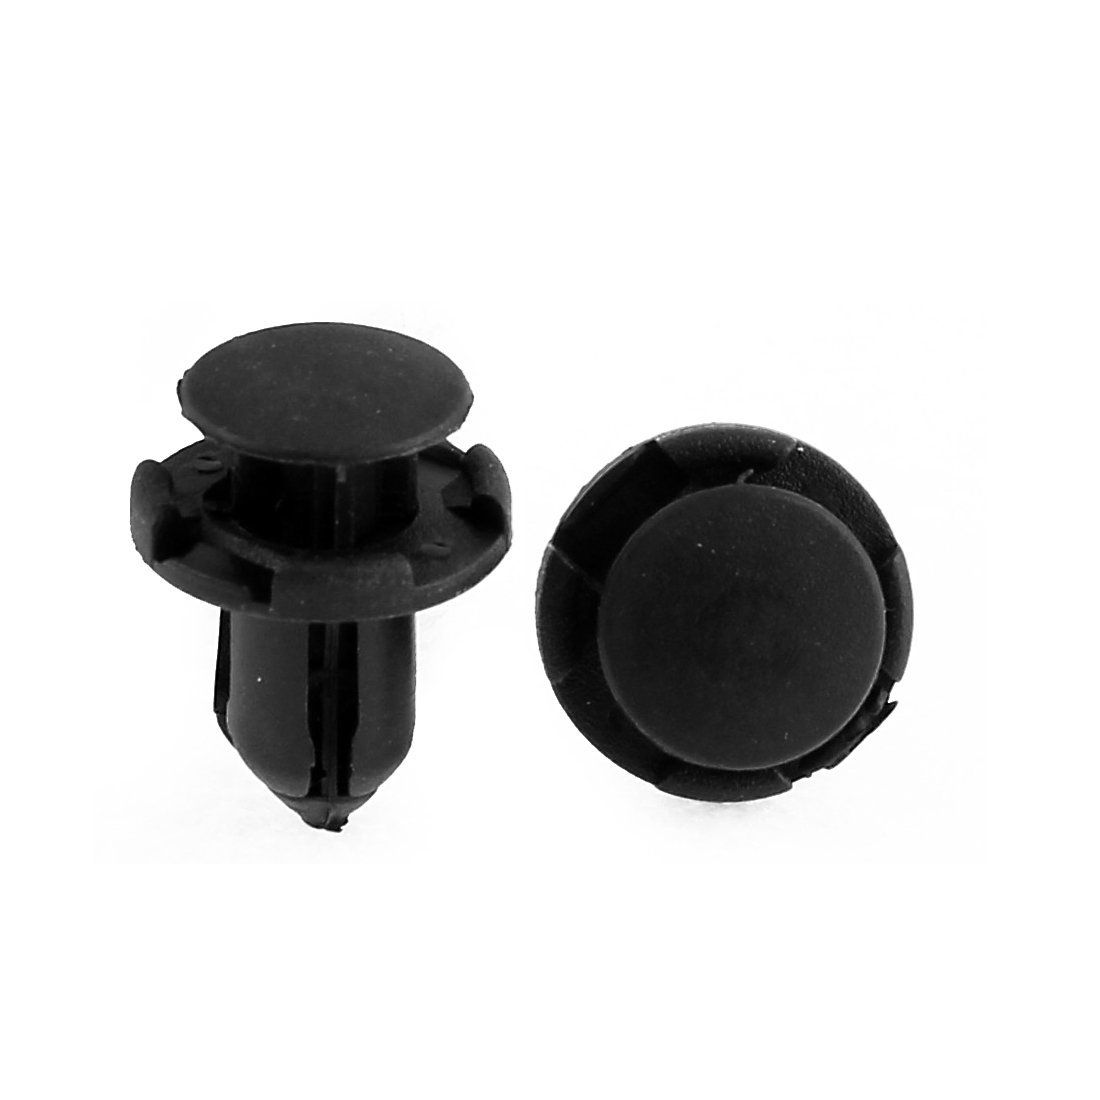 Uxcell a15121100ux0041 Clips//Rivets//Fastener 50 Pack